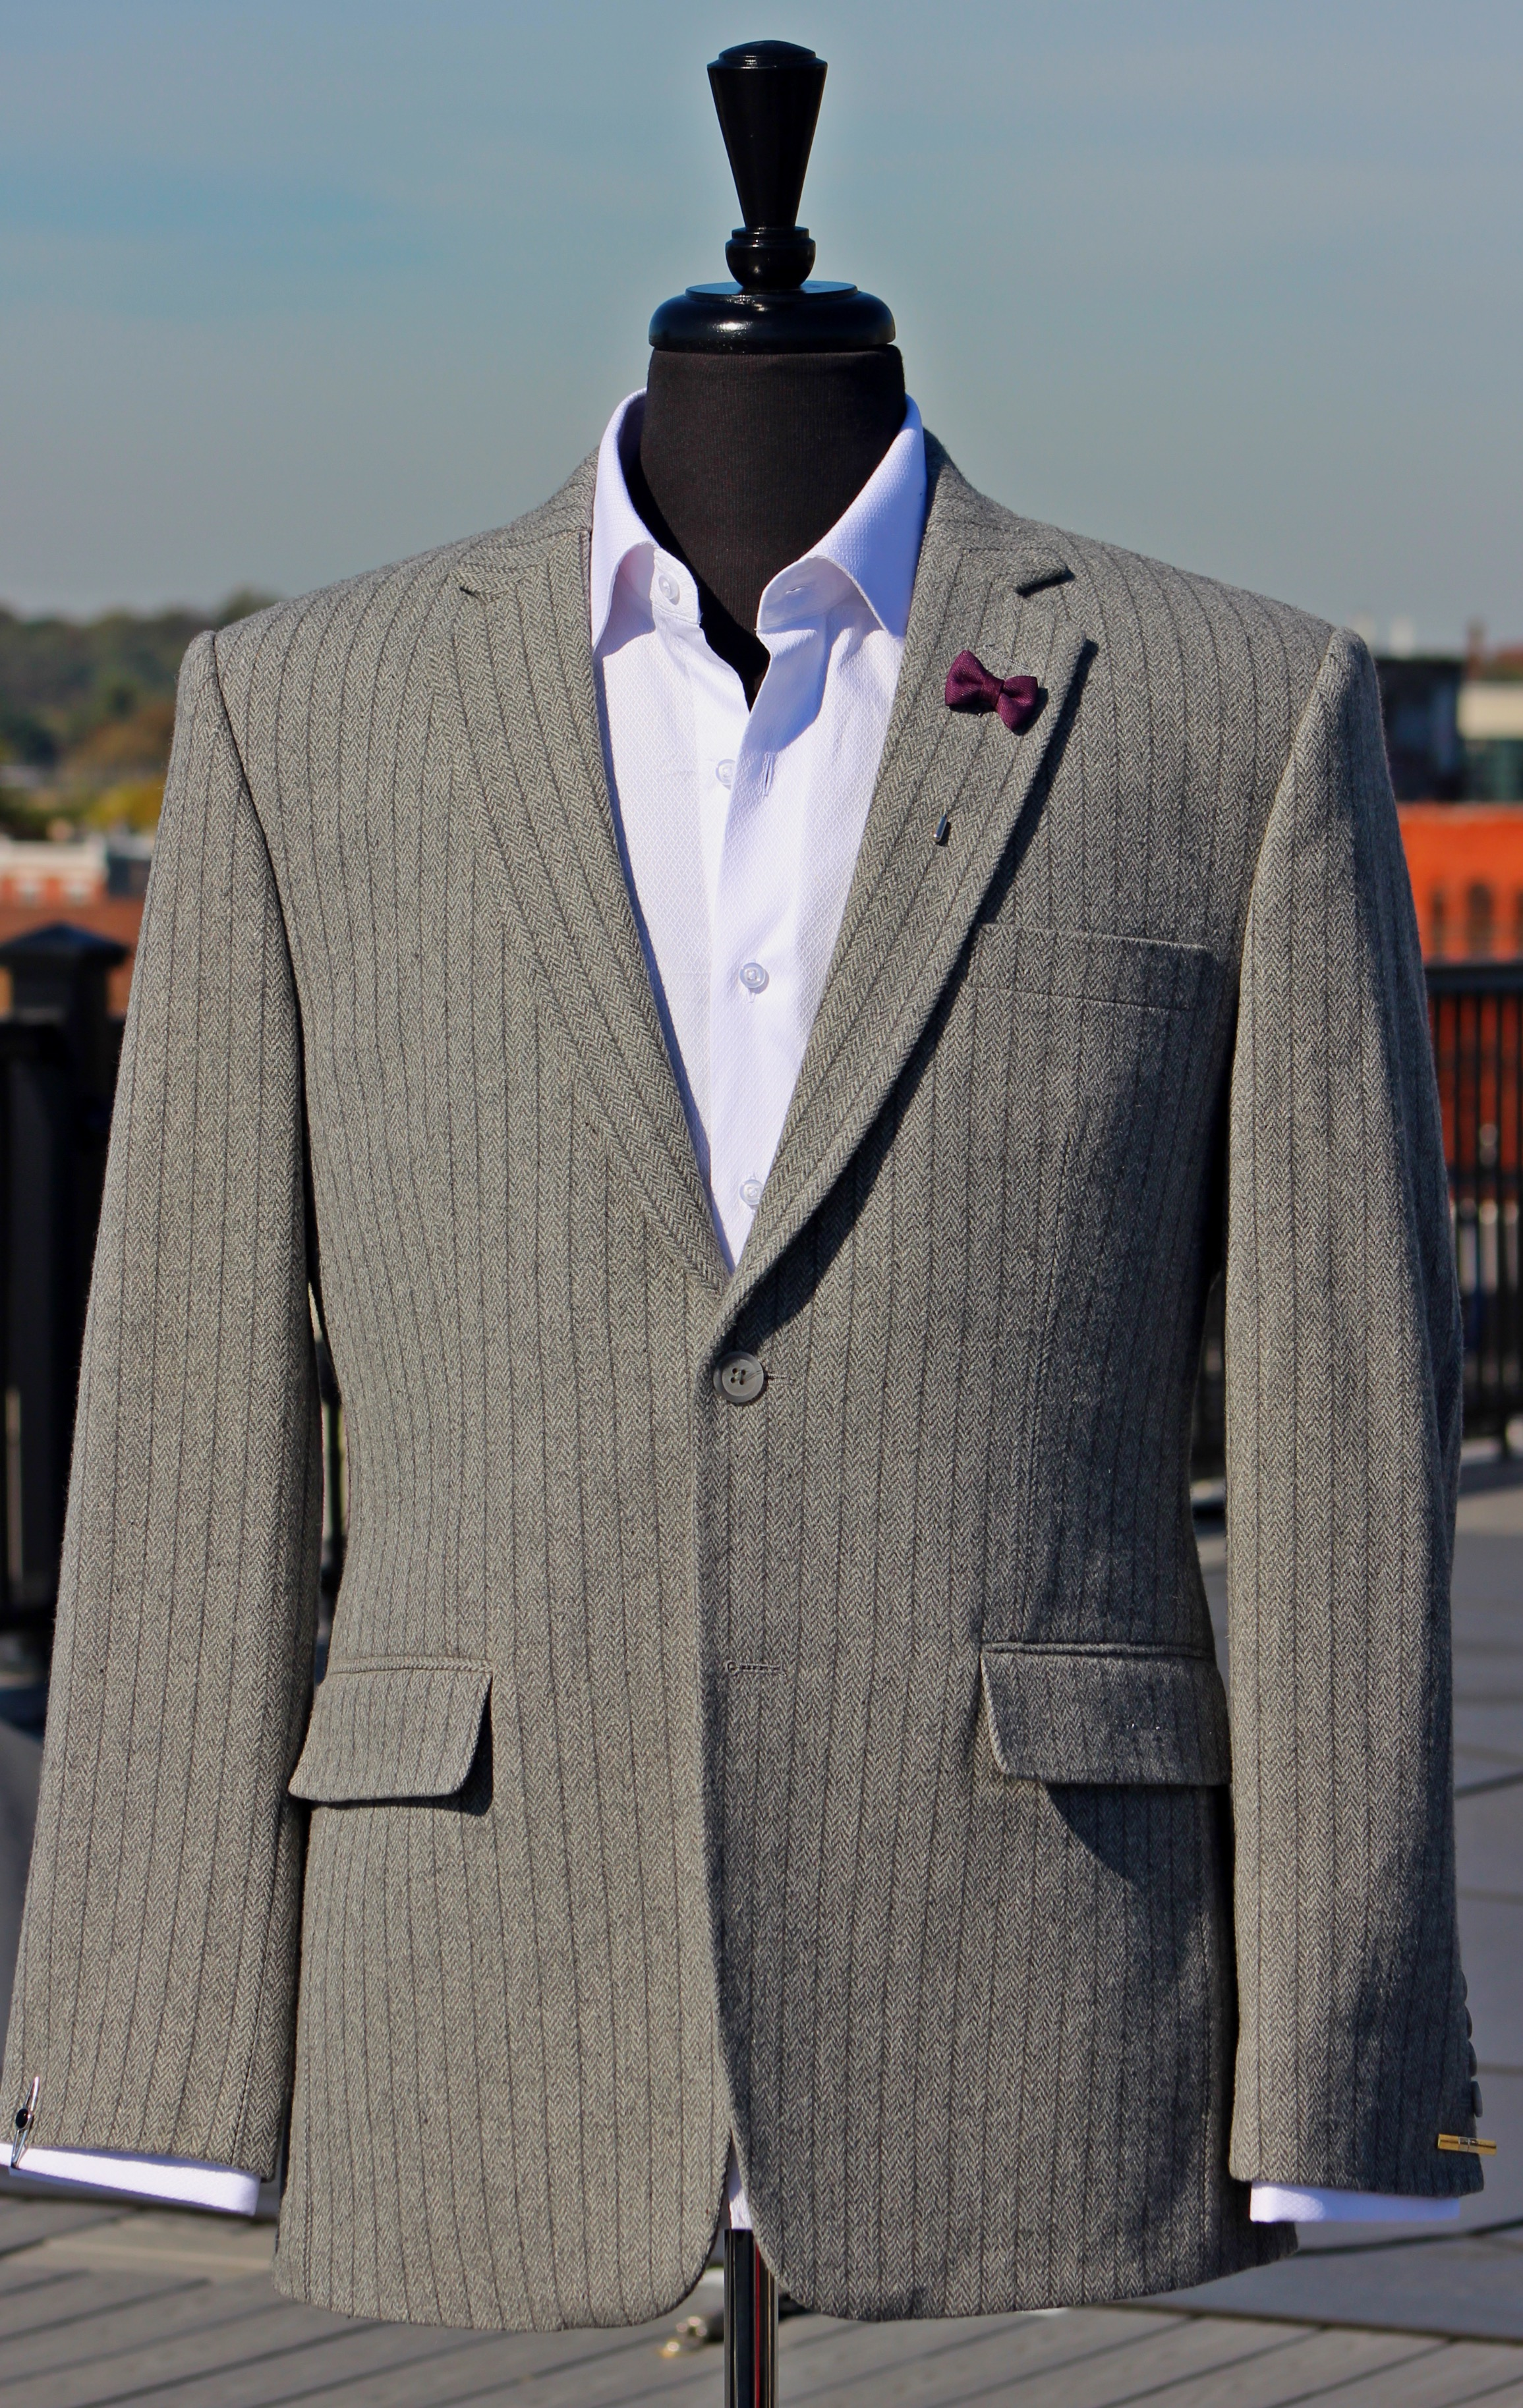 tailored suit for men.JPG